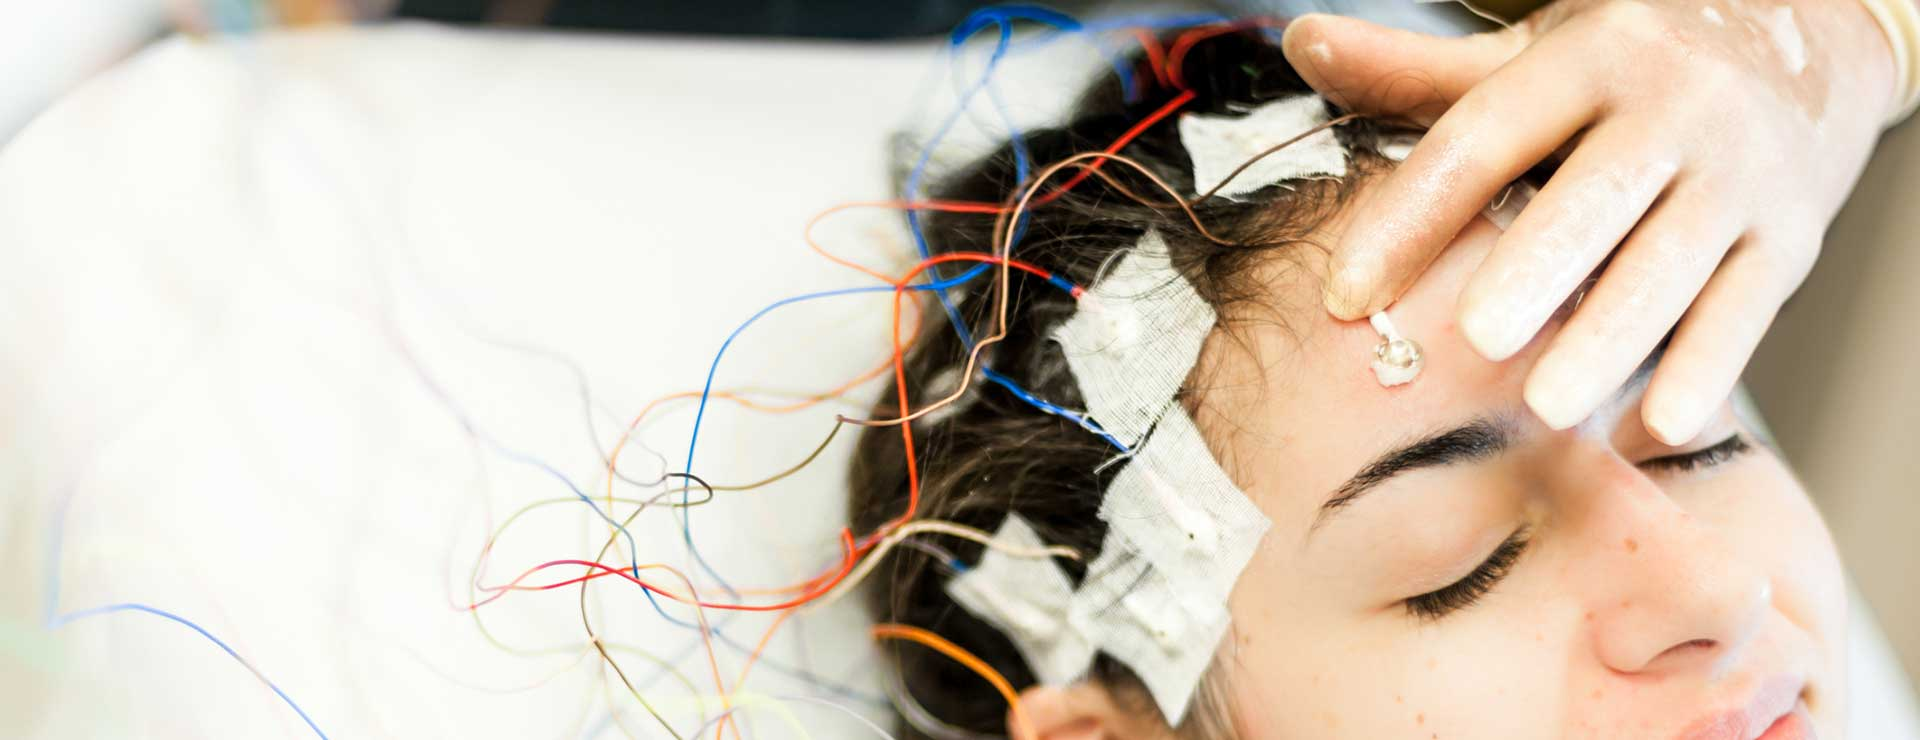 Woman with electrodes on head undergoing wada testing